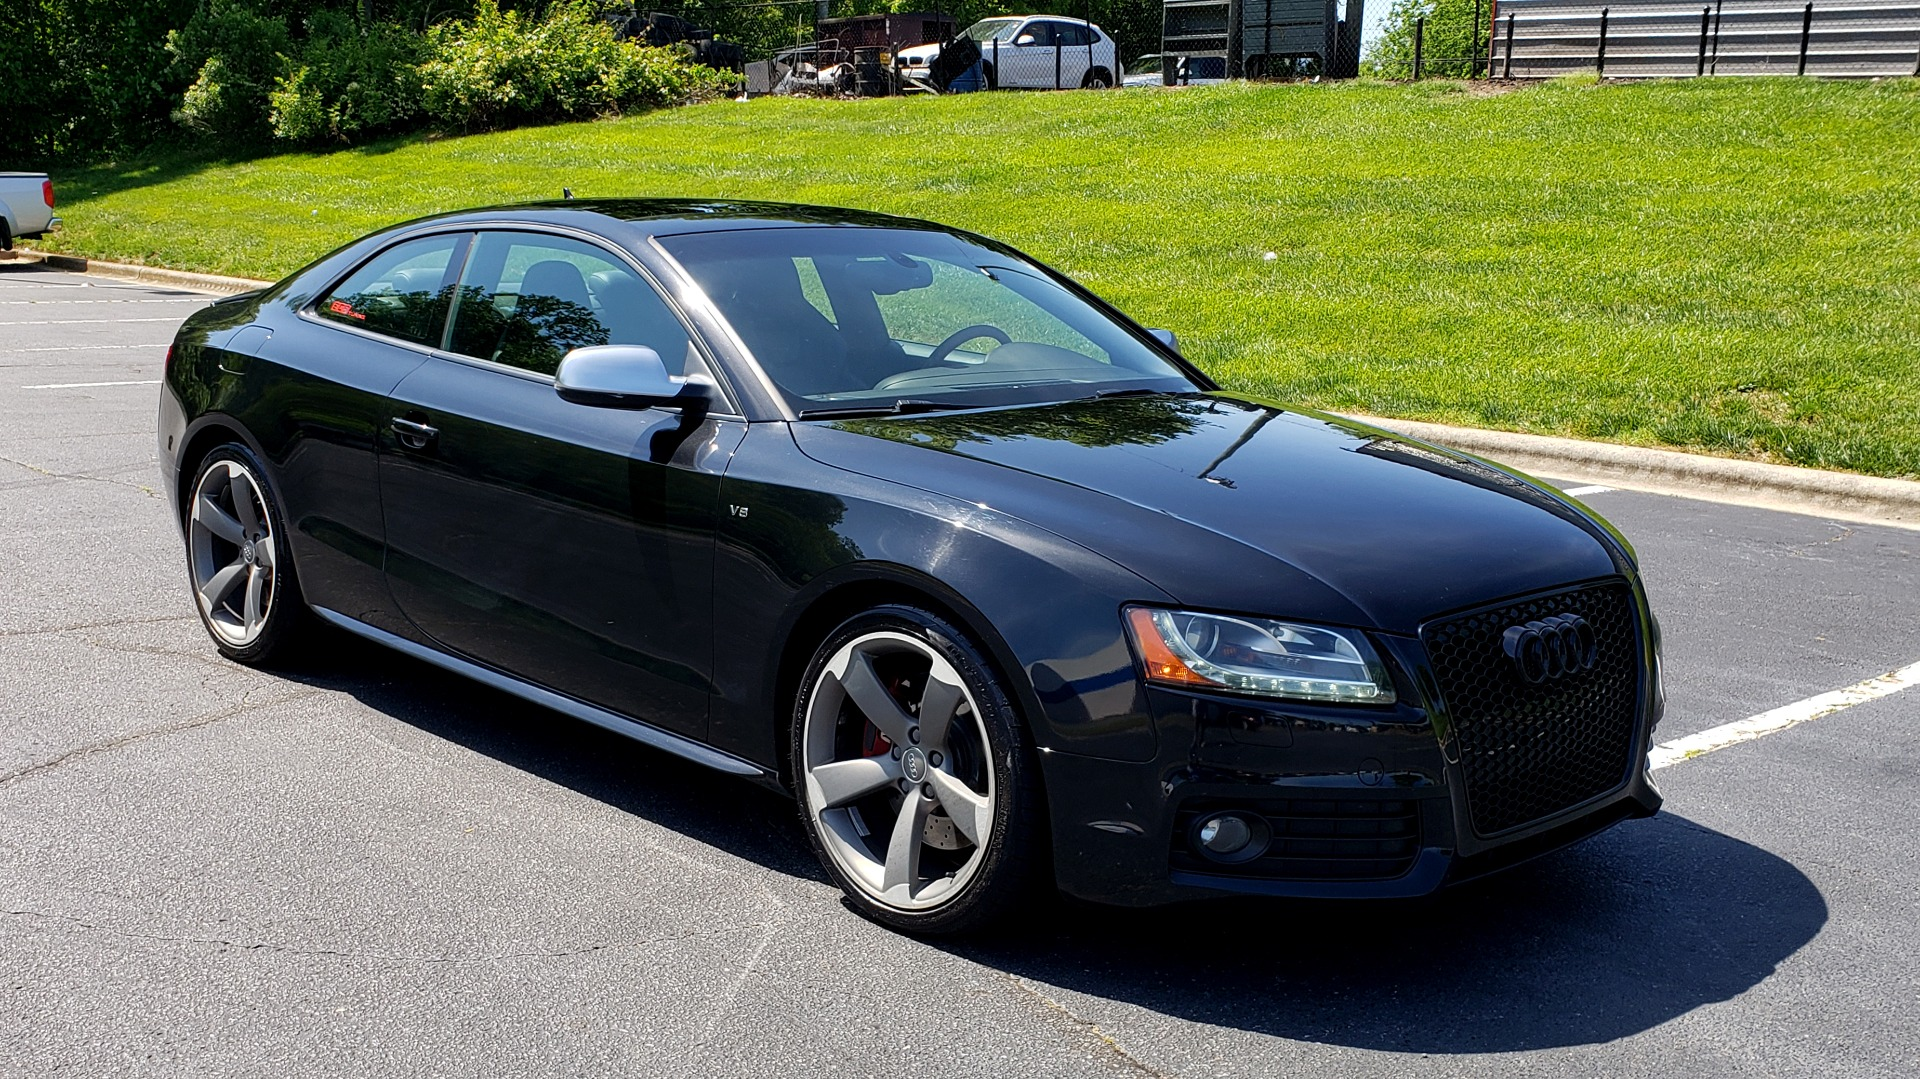 Used 2011 Audi S5 PREMIUM PLUS / AVENGERS COUPE / NAV / SUNROOF / REARVIEW for sale Sold at Formula Imports in Charlotte NC 28227 4